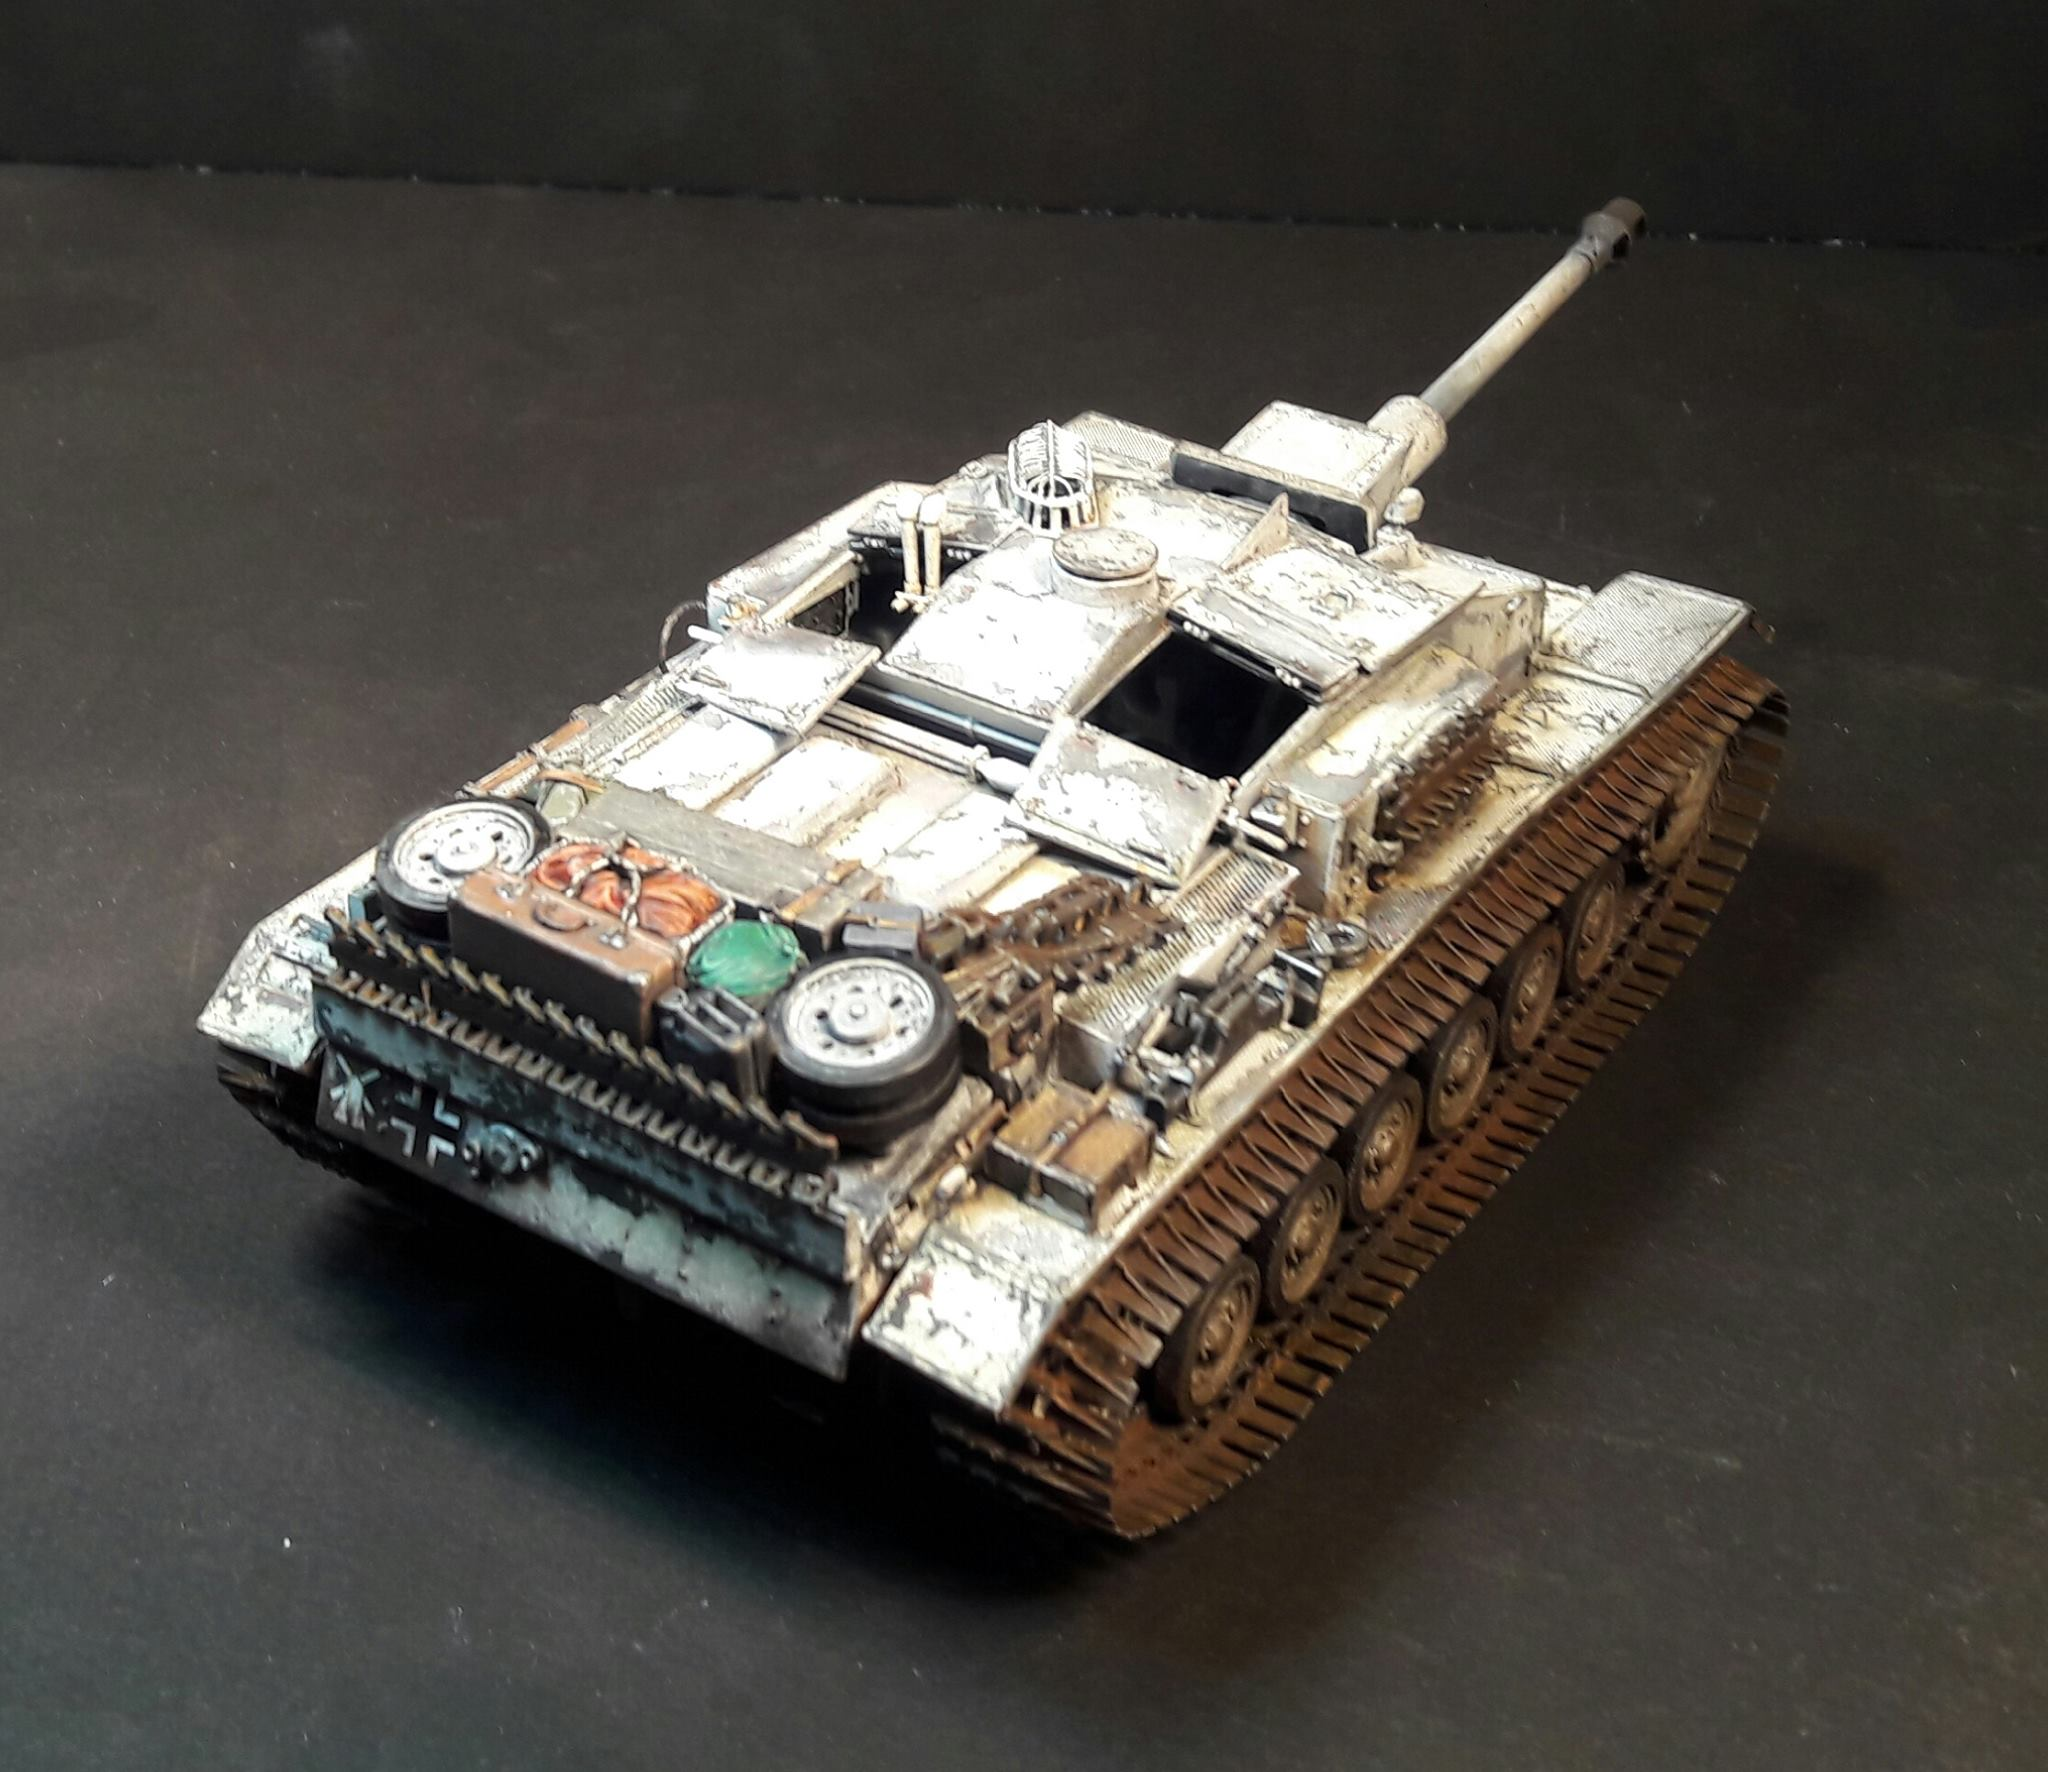 StuG.III Ausf.F/8 late production w/Winterketten - 1/35 - Page 2 26668820930303102120985114325881005210834o